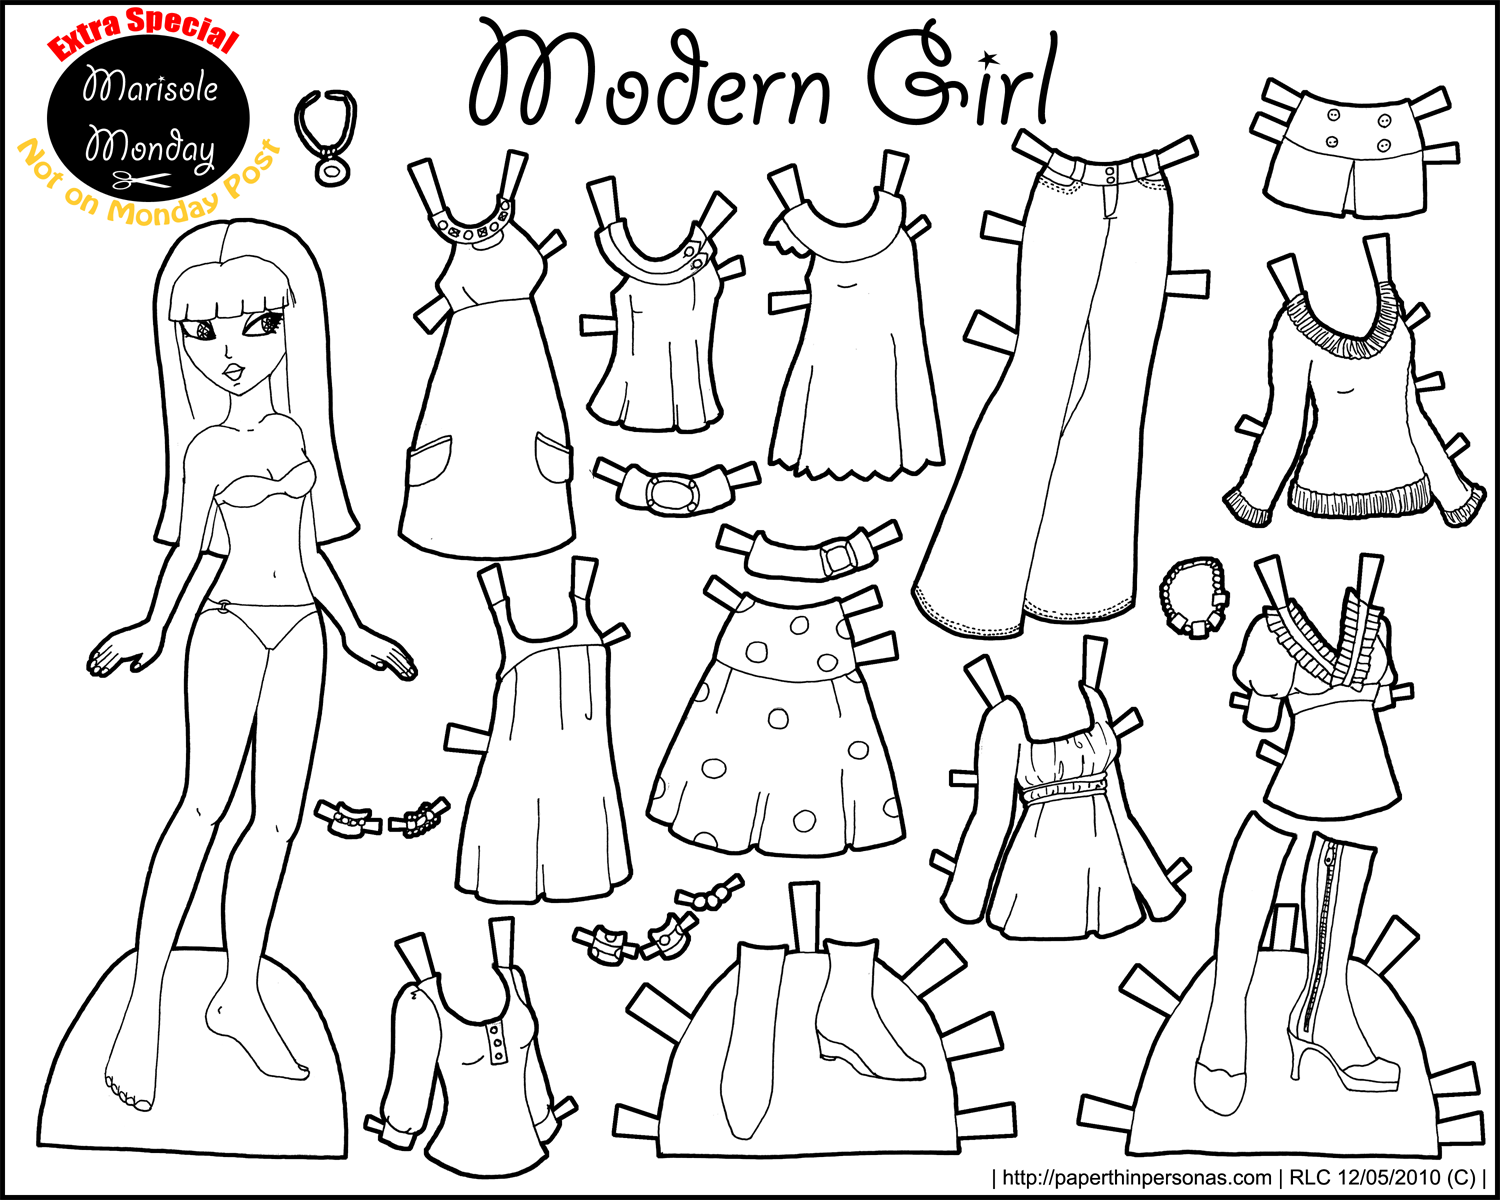 Marisole Monday: Modern Girl In Black & White | Coloring